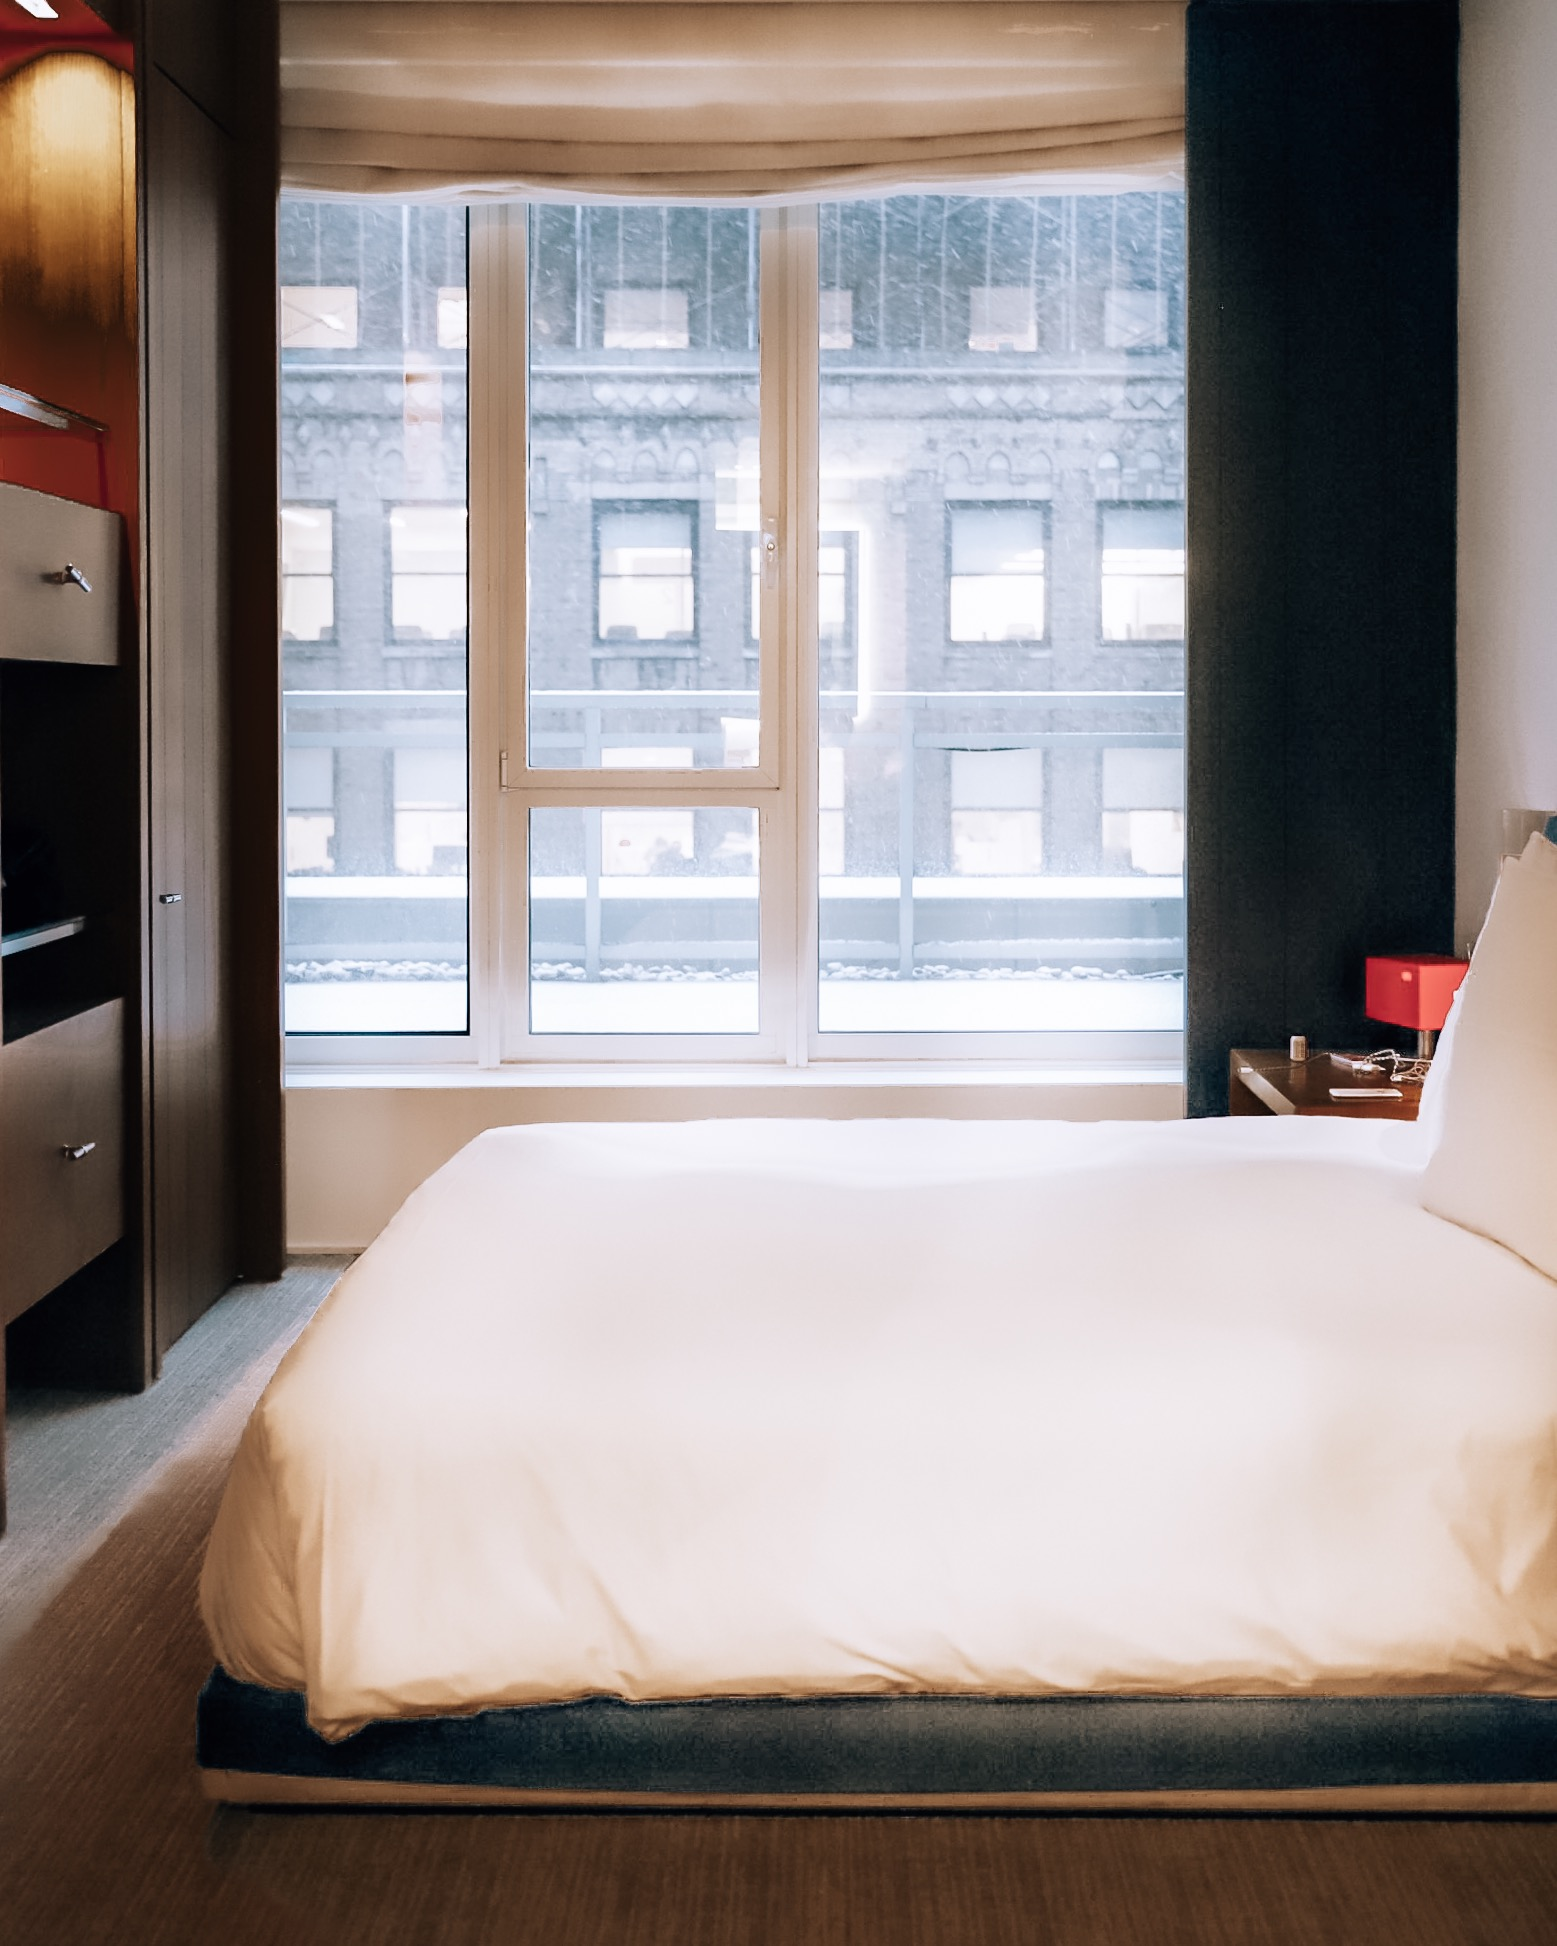 Andaz 5th avenue, new-work, hôtel, kiwi collection, suite, room